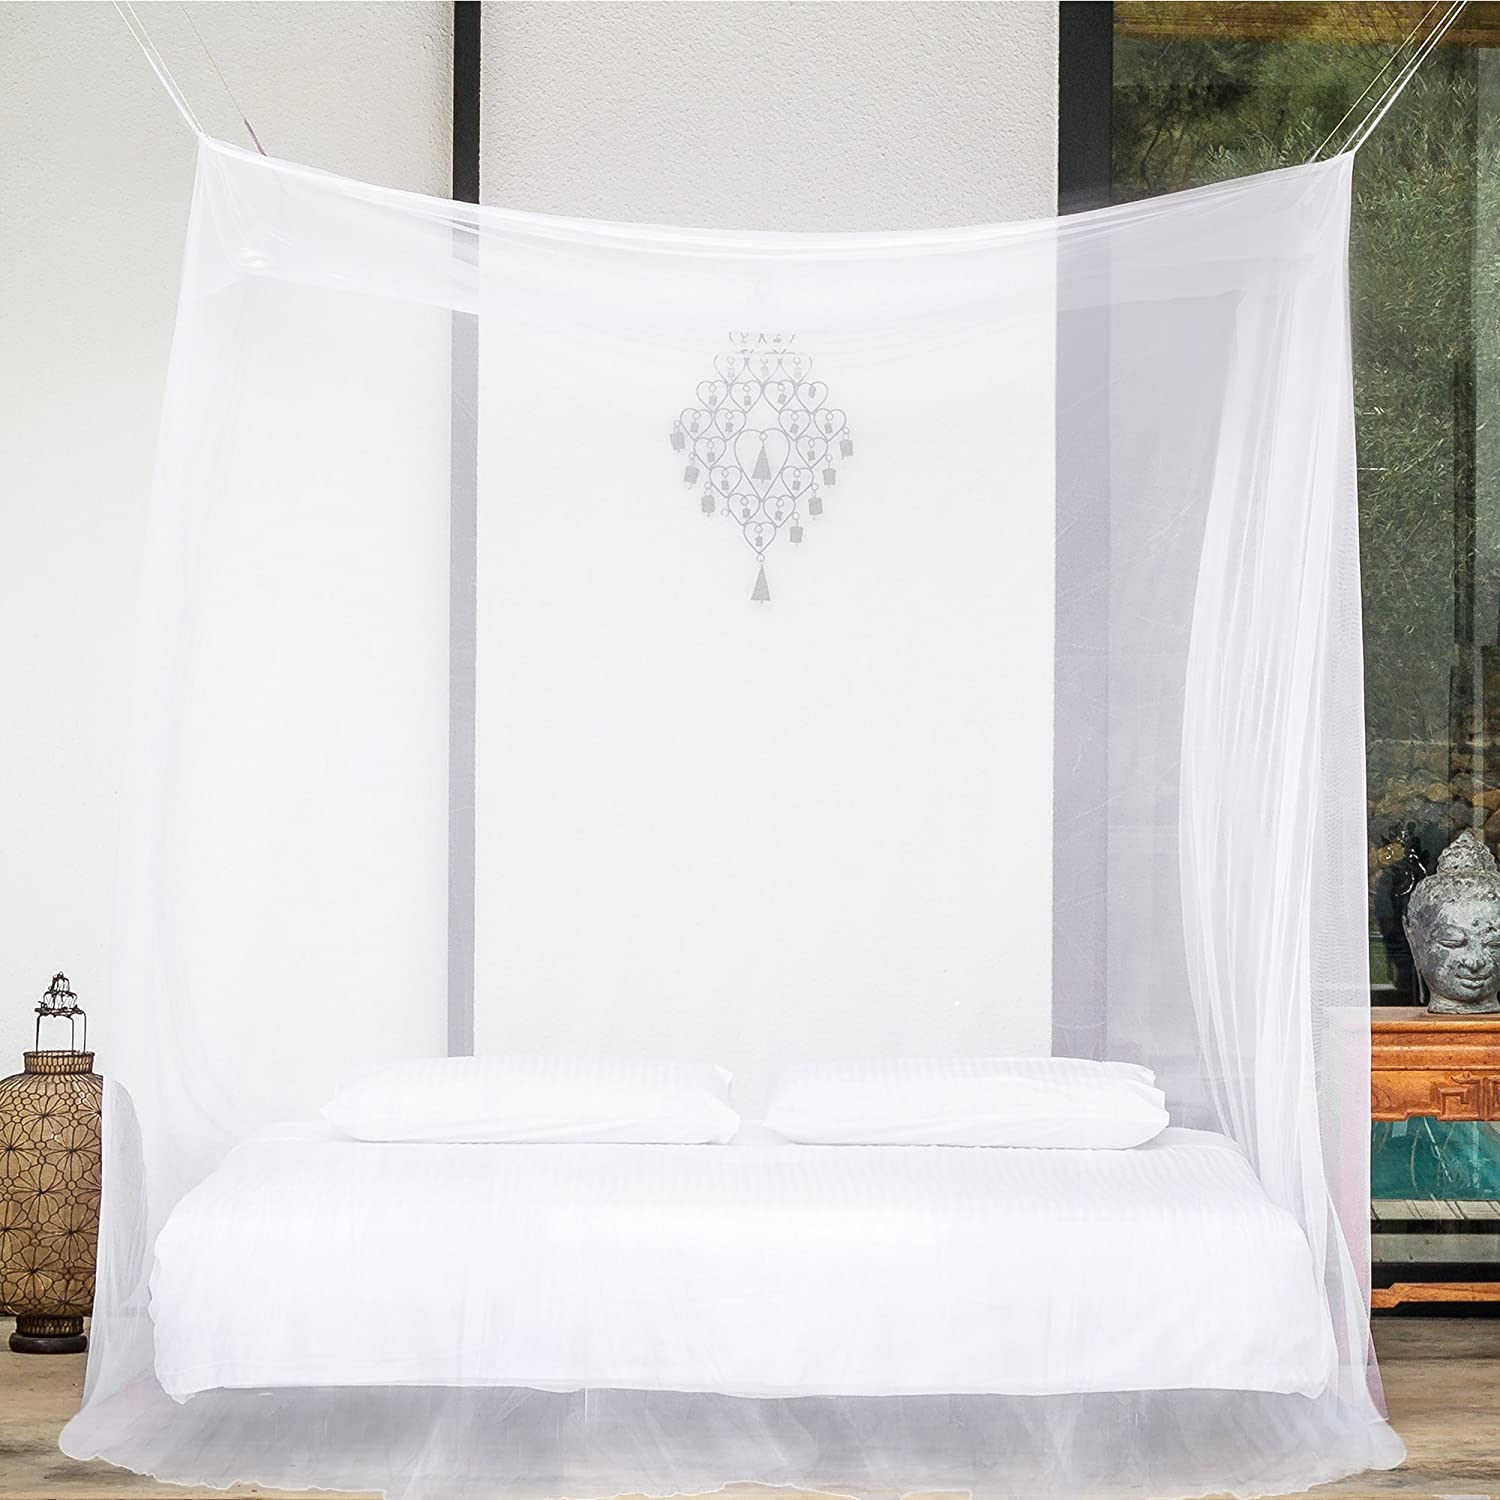 Amazon.com: PREMIUM MOSQUITO NET for Double Bed, TWO Openings, Square  Netting Curtains, Canopy for Beds, Rectangular Fly Screen, Insect  Protection Repellent ...